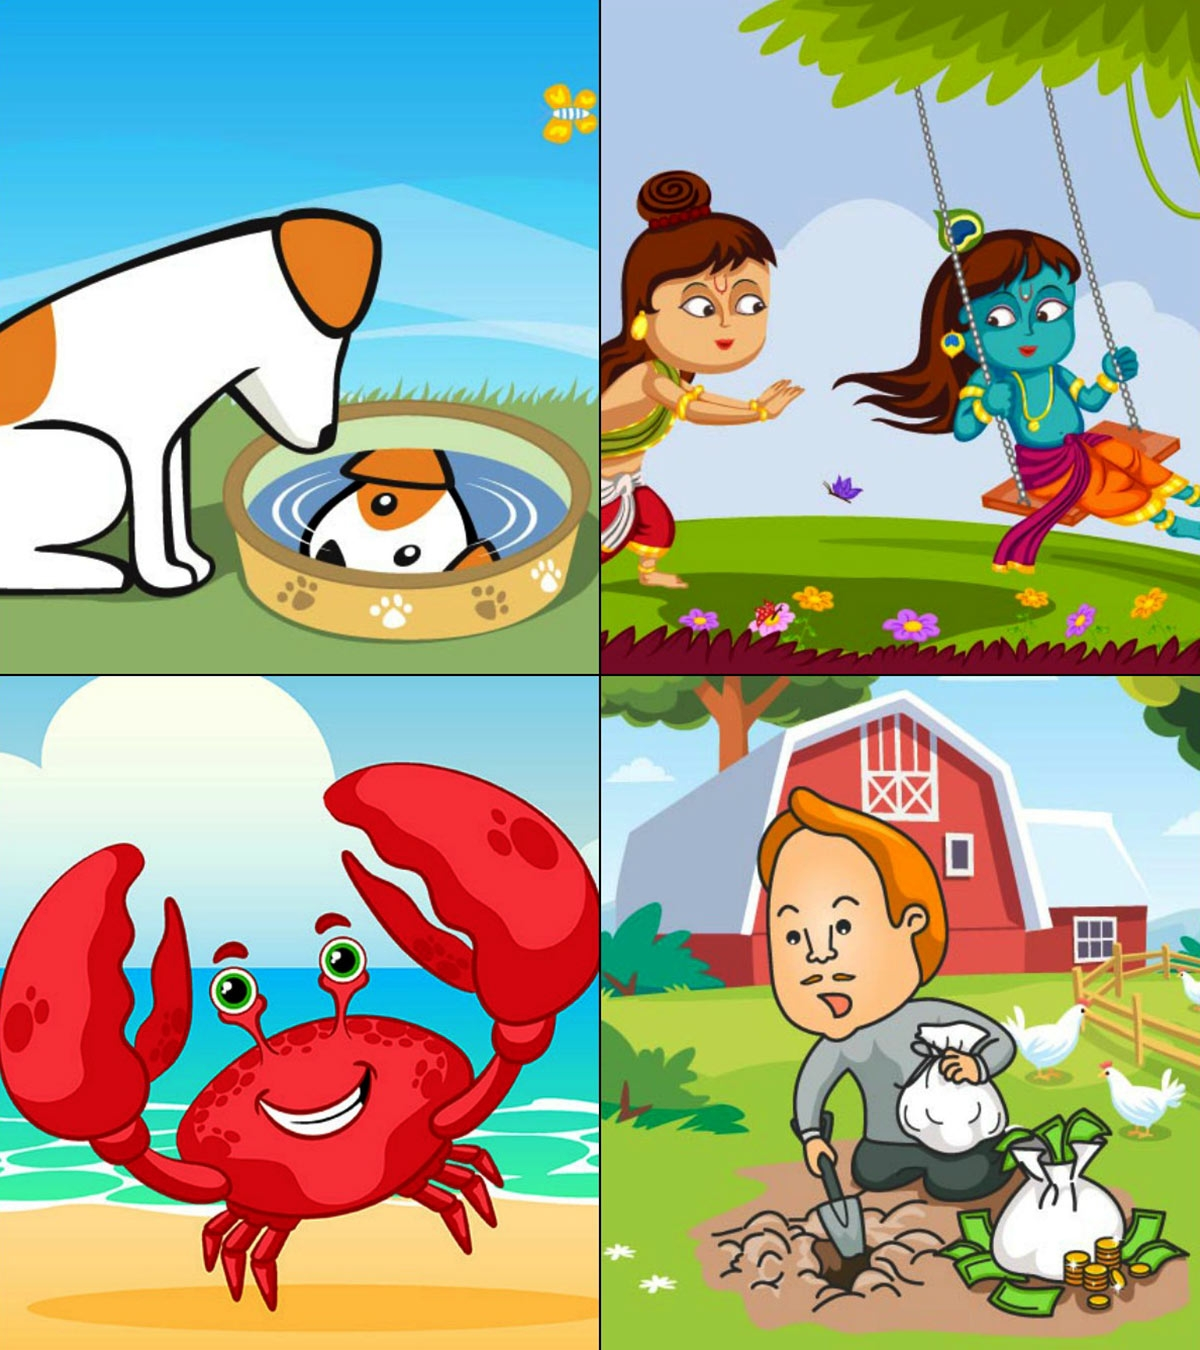 500+ Famous English Stories for Android - APK Download